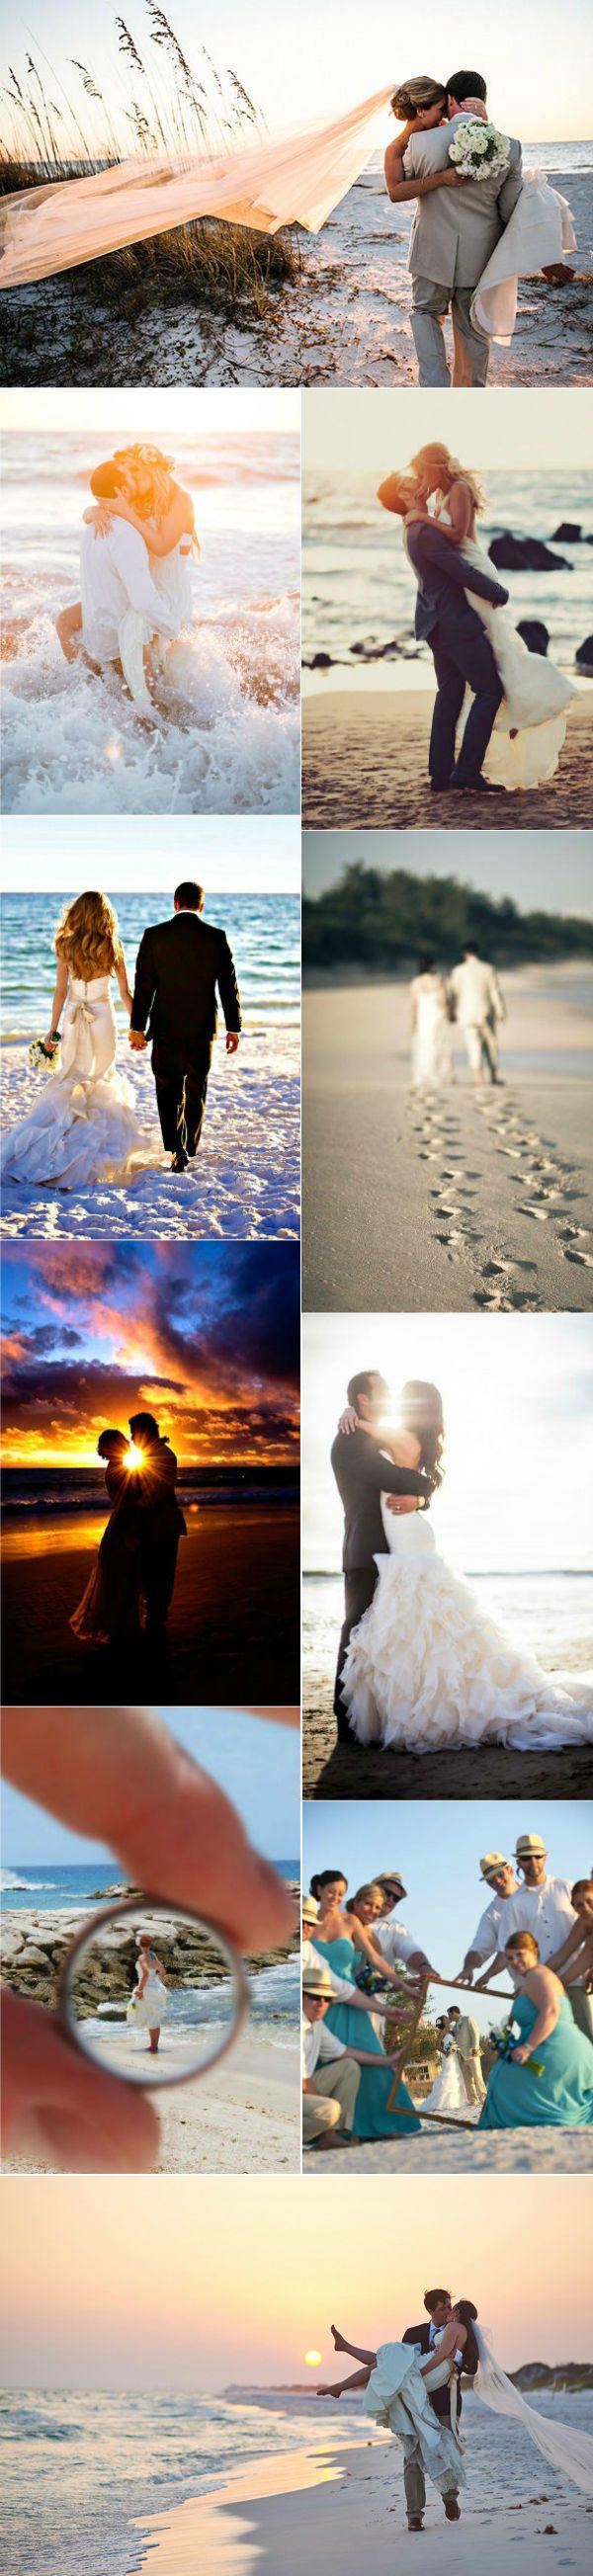 If you're planning a beach side wedding…amazing! You've basically won the wedding venue lottery! Who wouldn't want to get married next to crashing waves and a stellar view? While a beach wedding provides you with plenty of natural scenery and decor, and there's still so many fun things you can do to accentuate your location.Read more